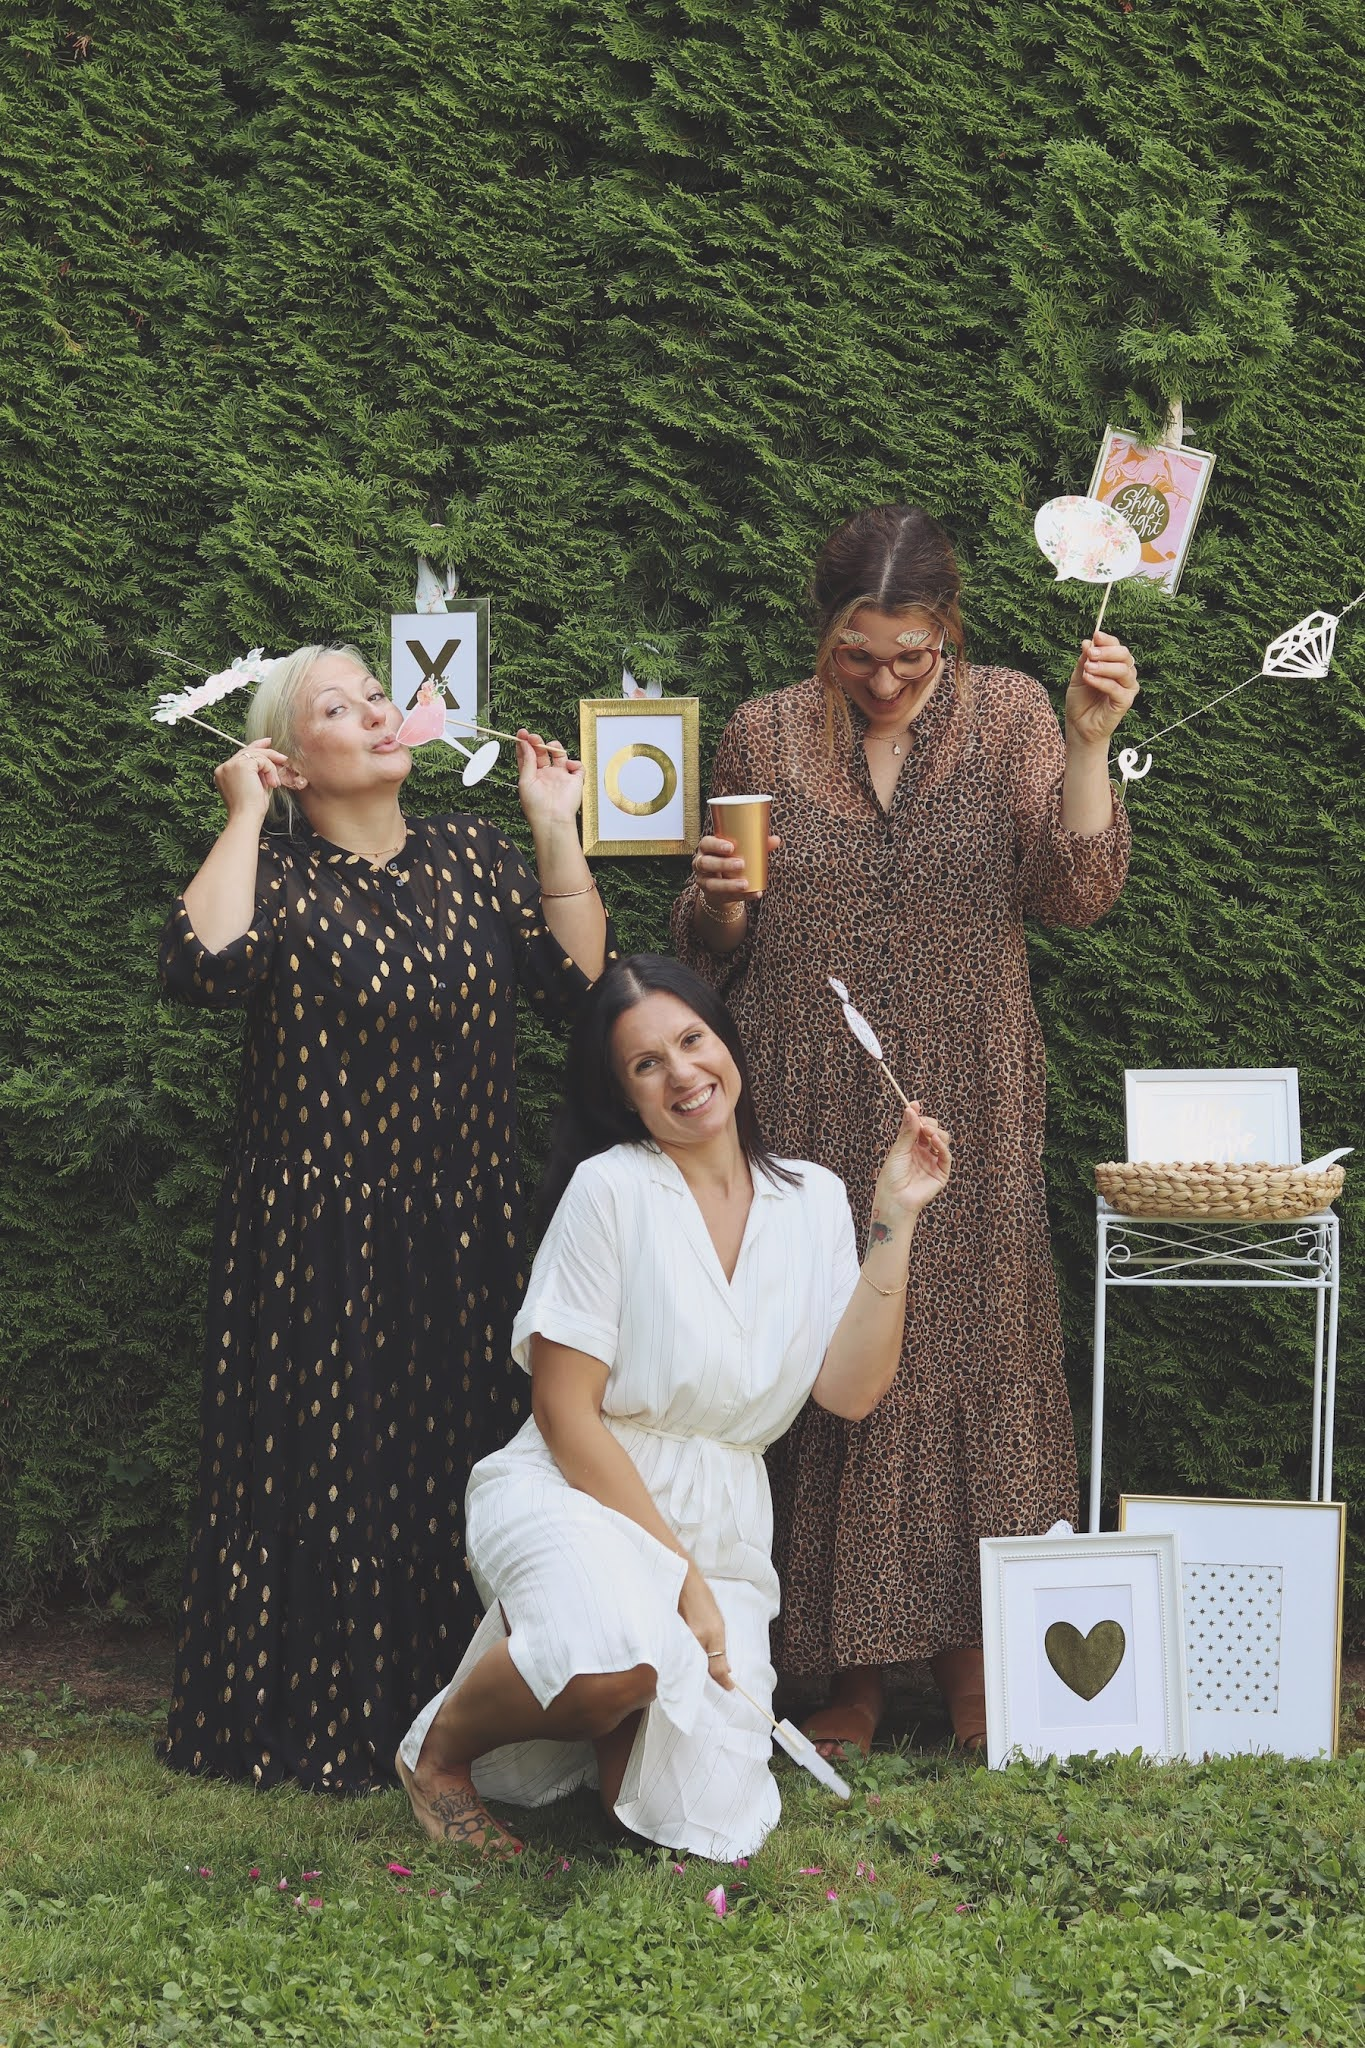 bridal shower on a budget photo booth